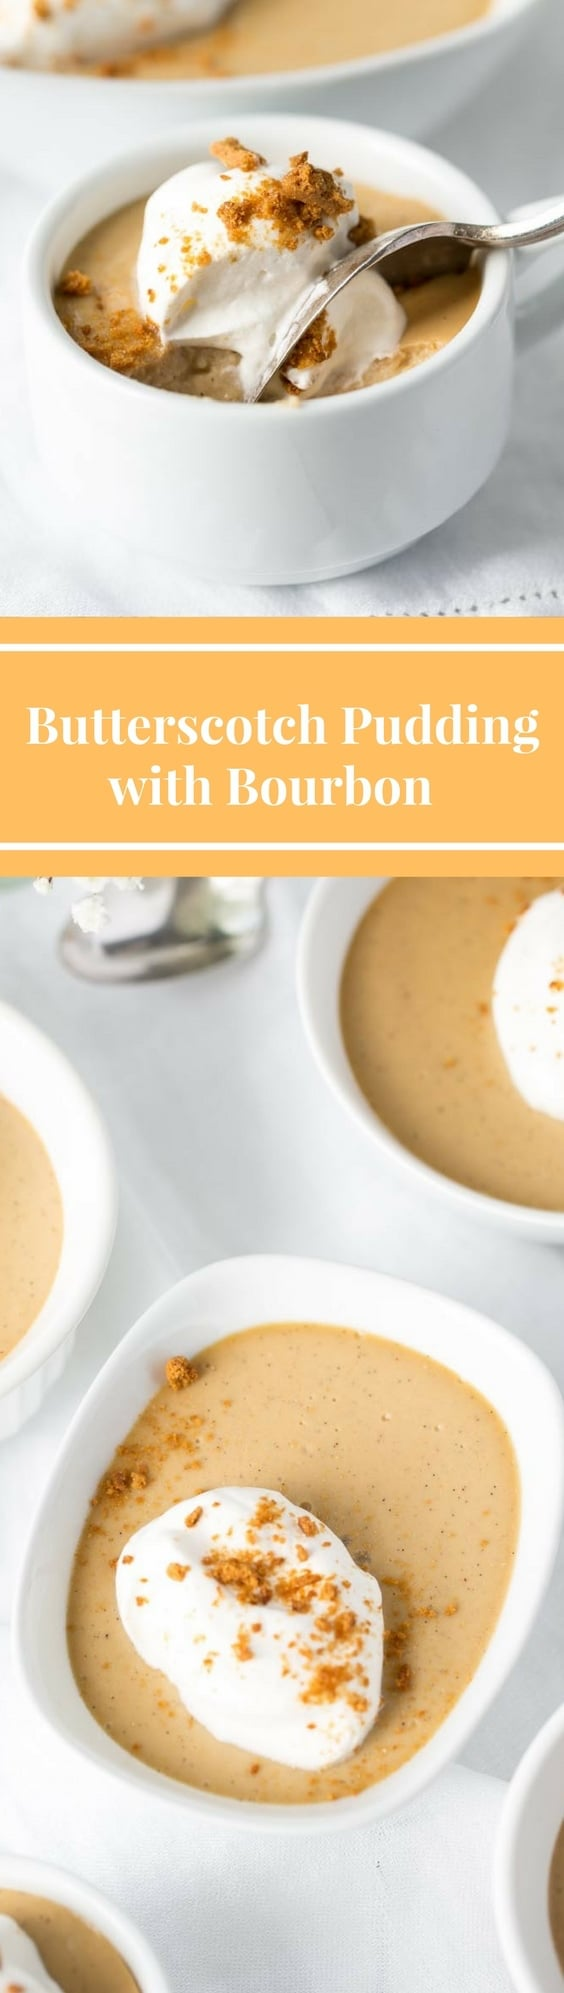 Butterscotch-Bourbon Pudding topped with crumbled ginger snap cookies | www.savingdessert.com